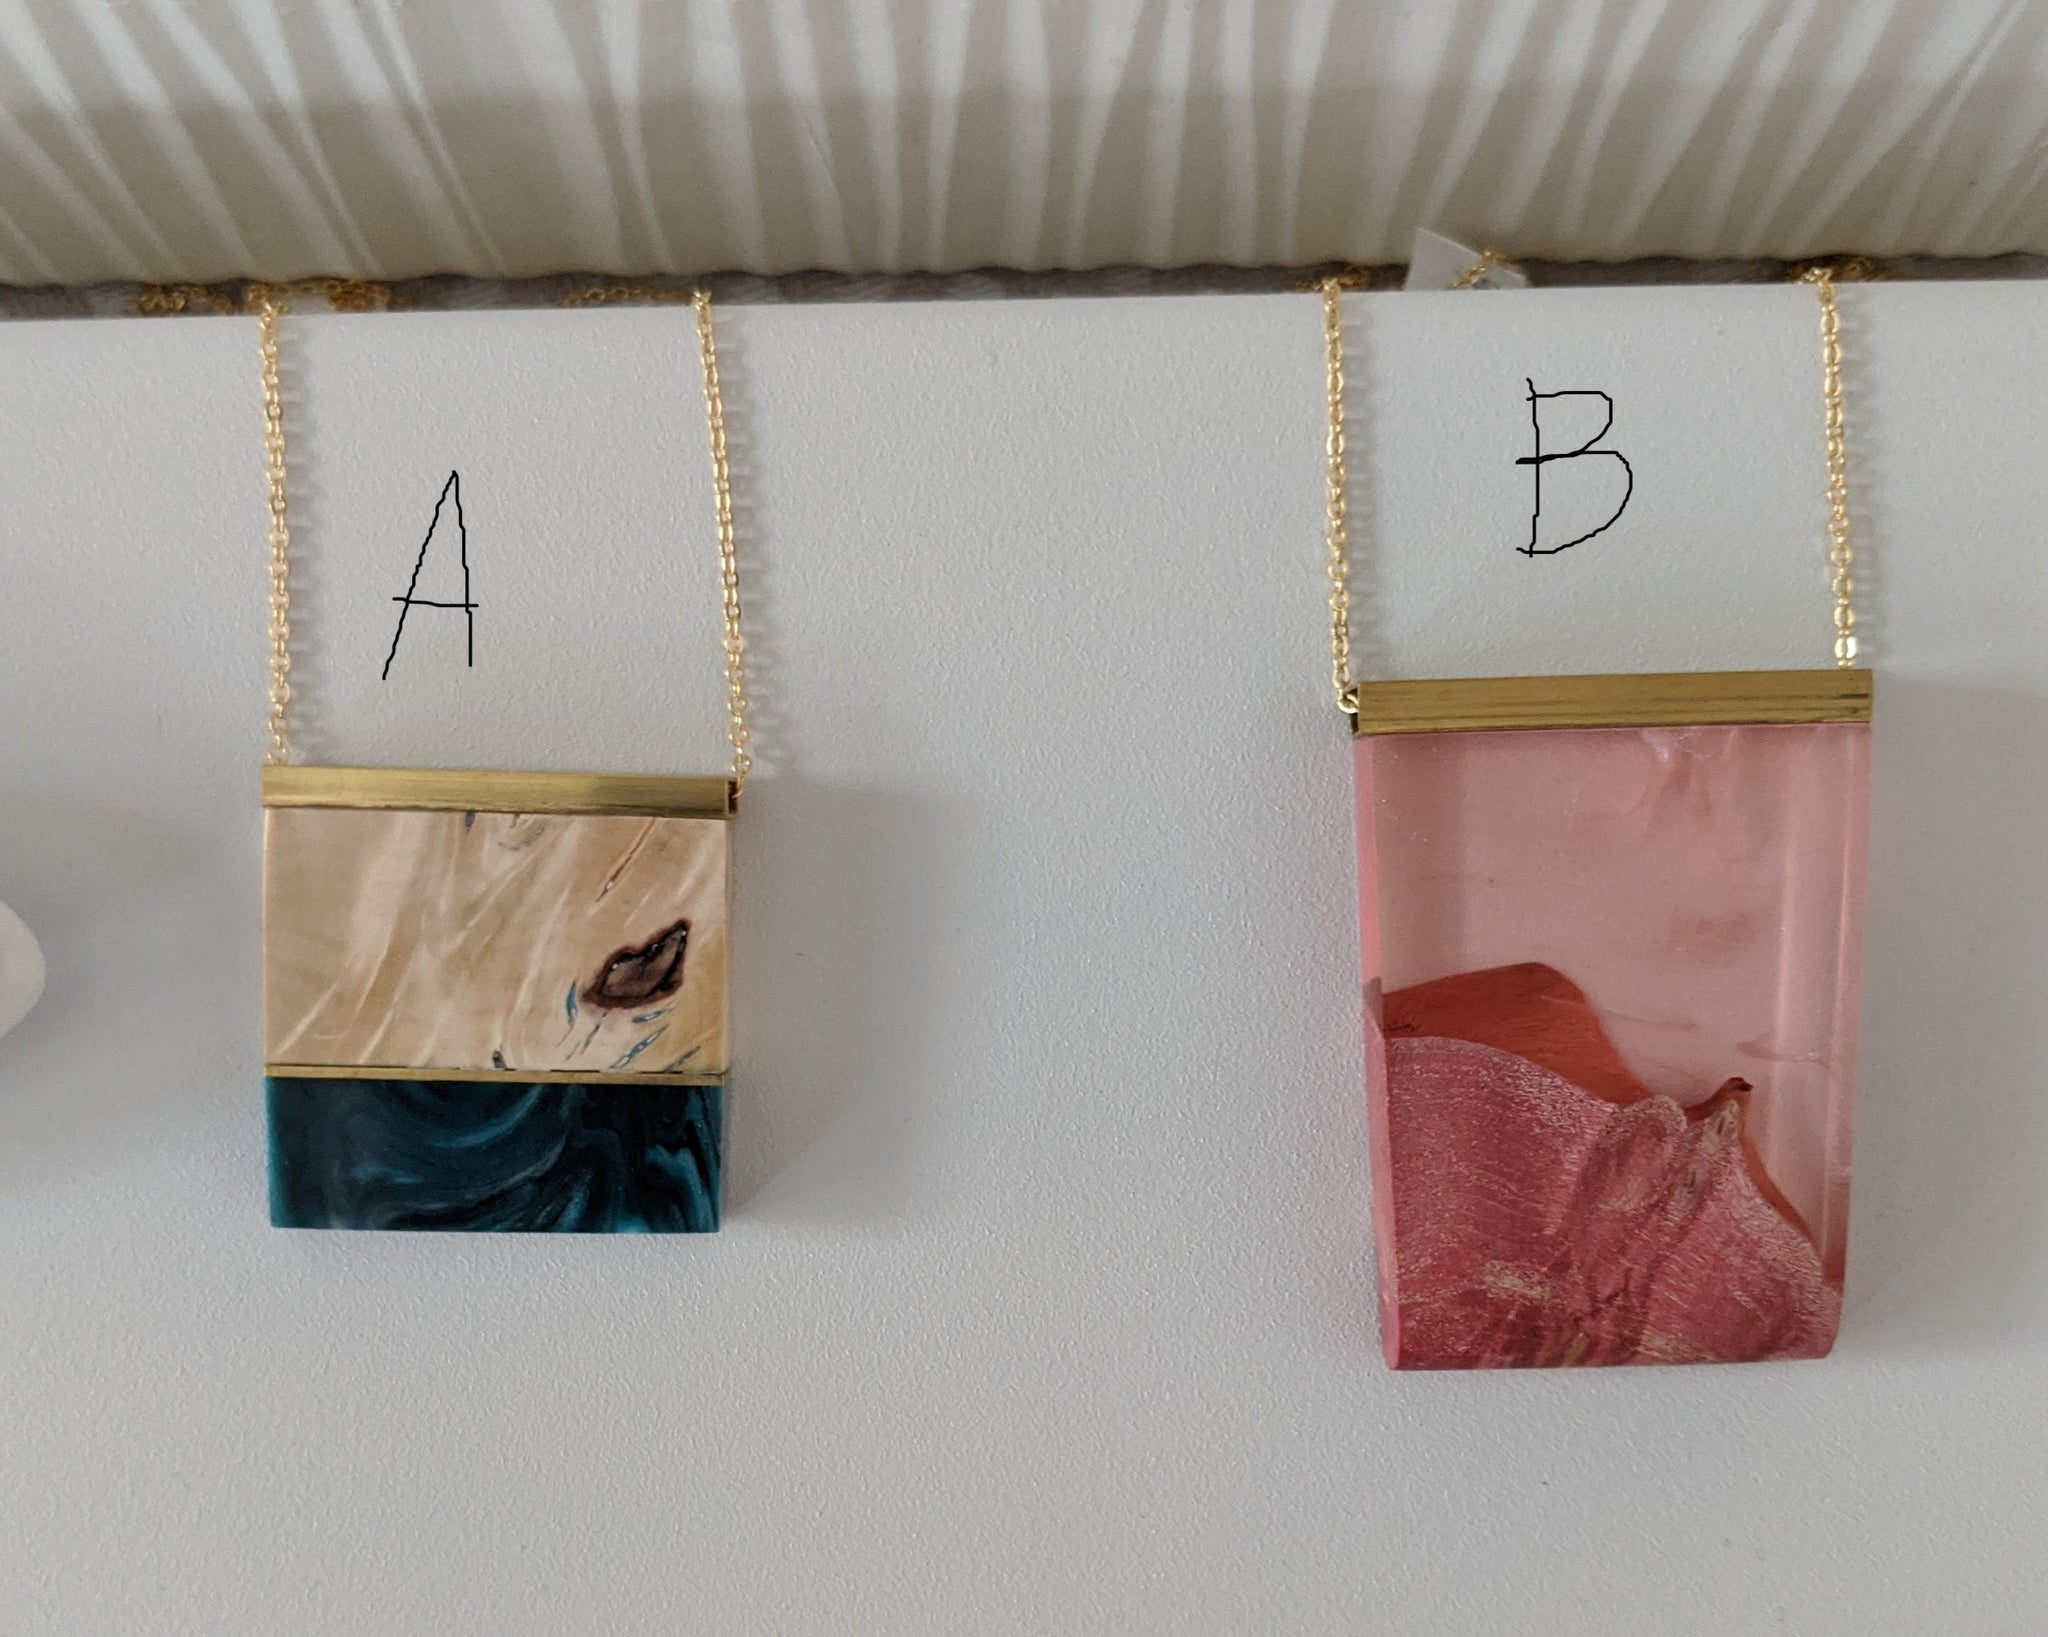 Reclaimed Wood and Resin Necklaces